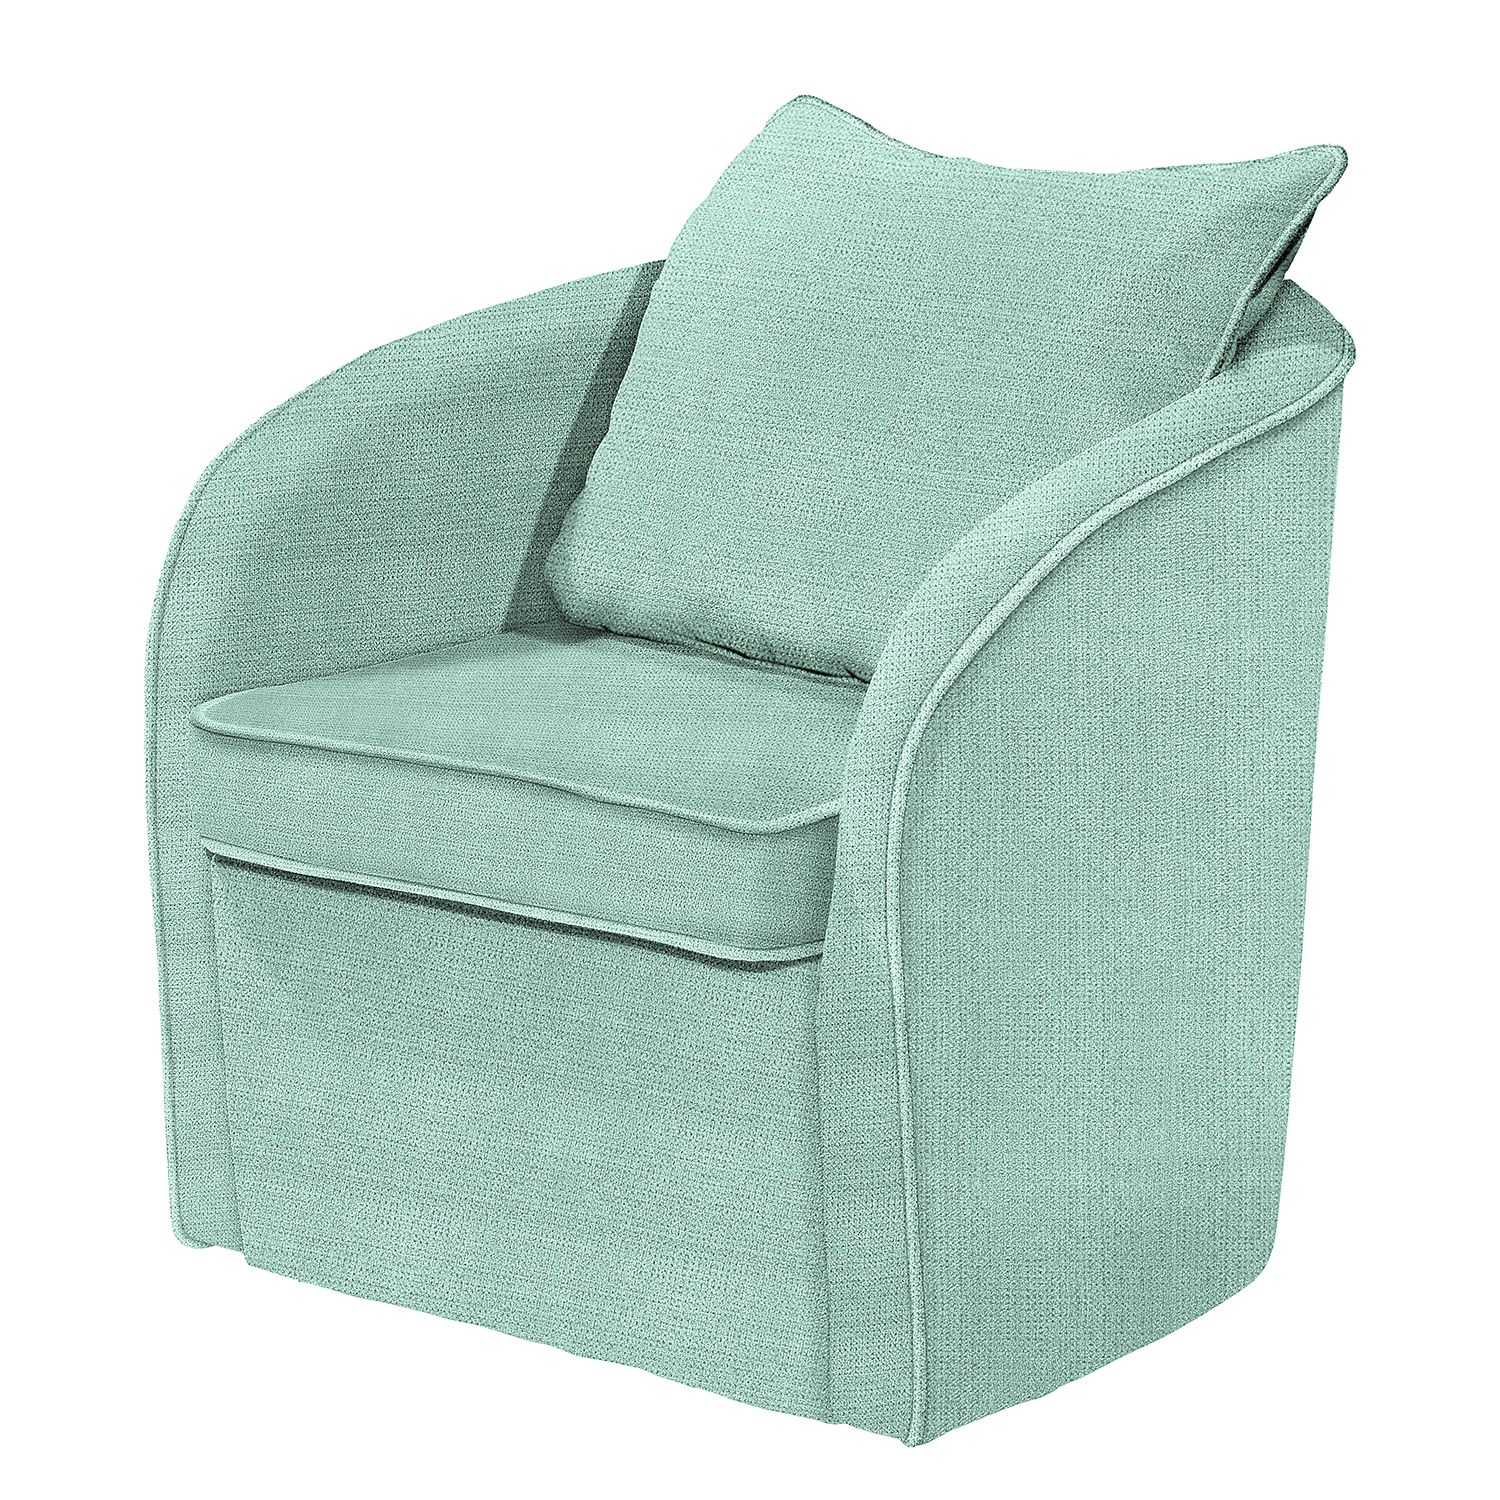 Fauteuil Marcy - Tissu - Vert menthe, mooved